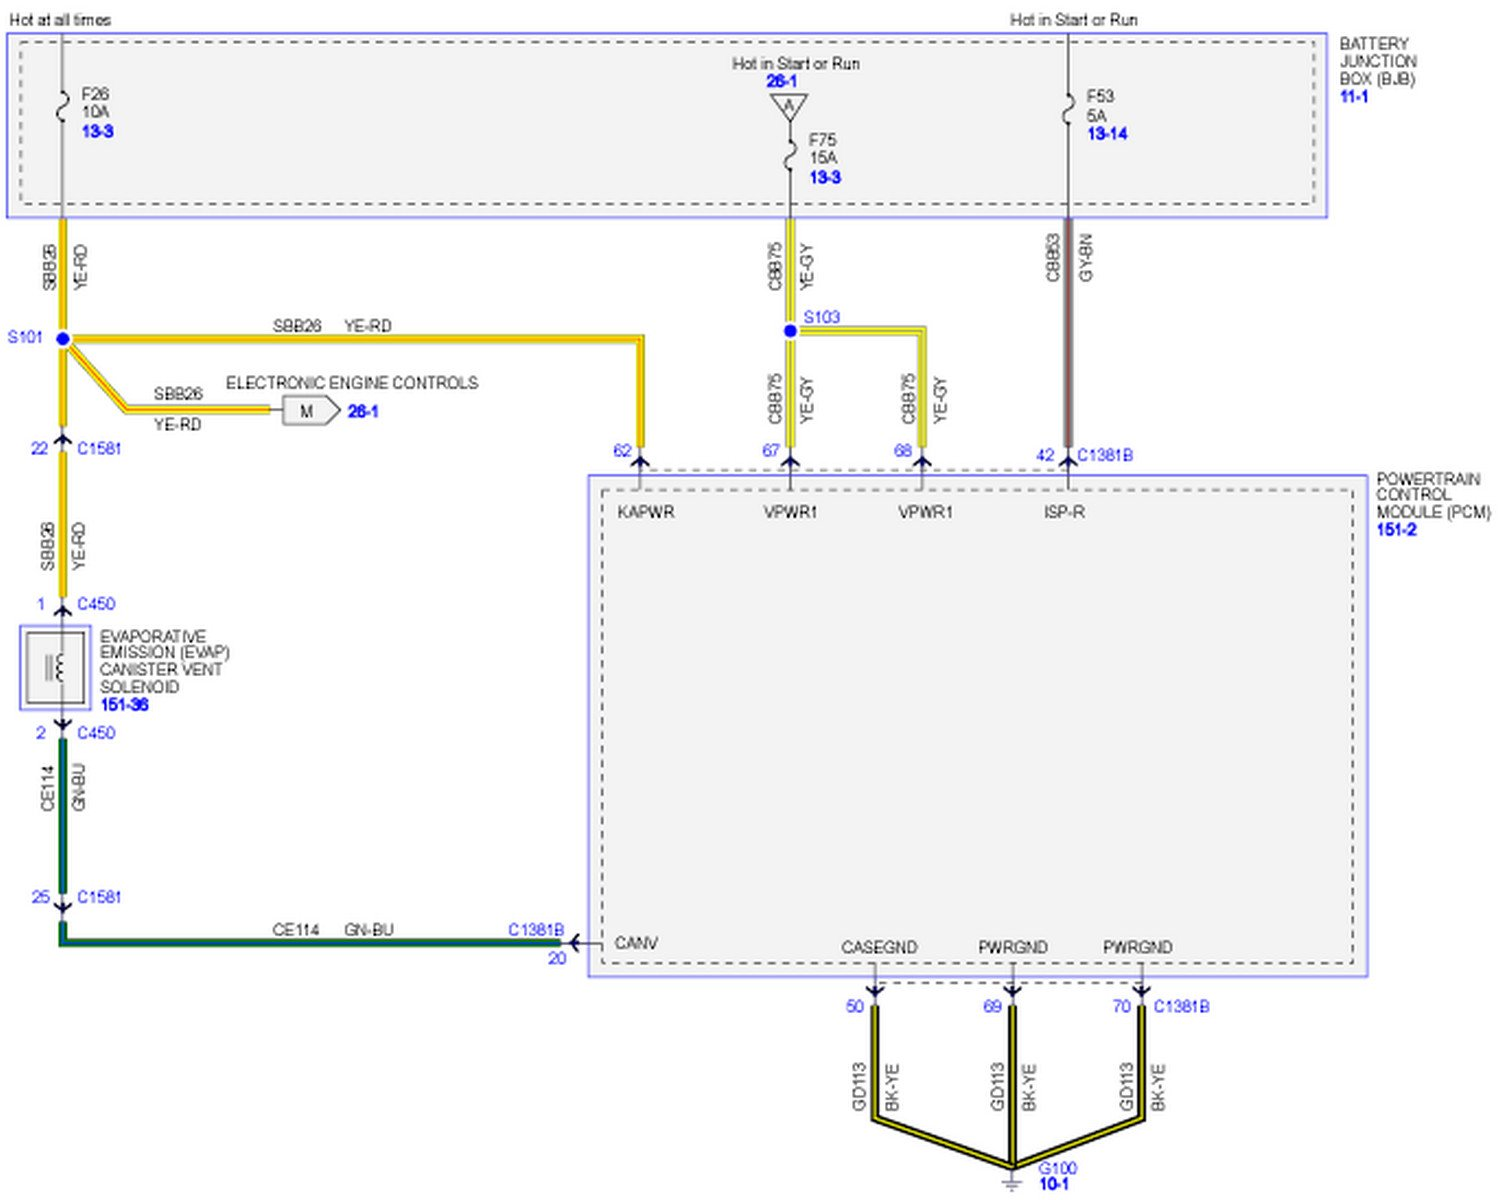 I Need A Pcm Wiring Schematic For A 2011 F150 With 6 2